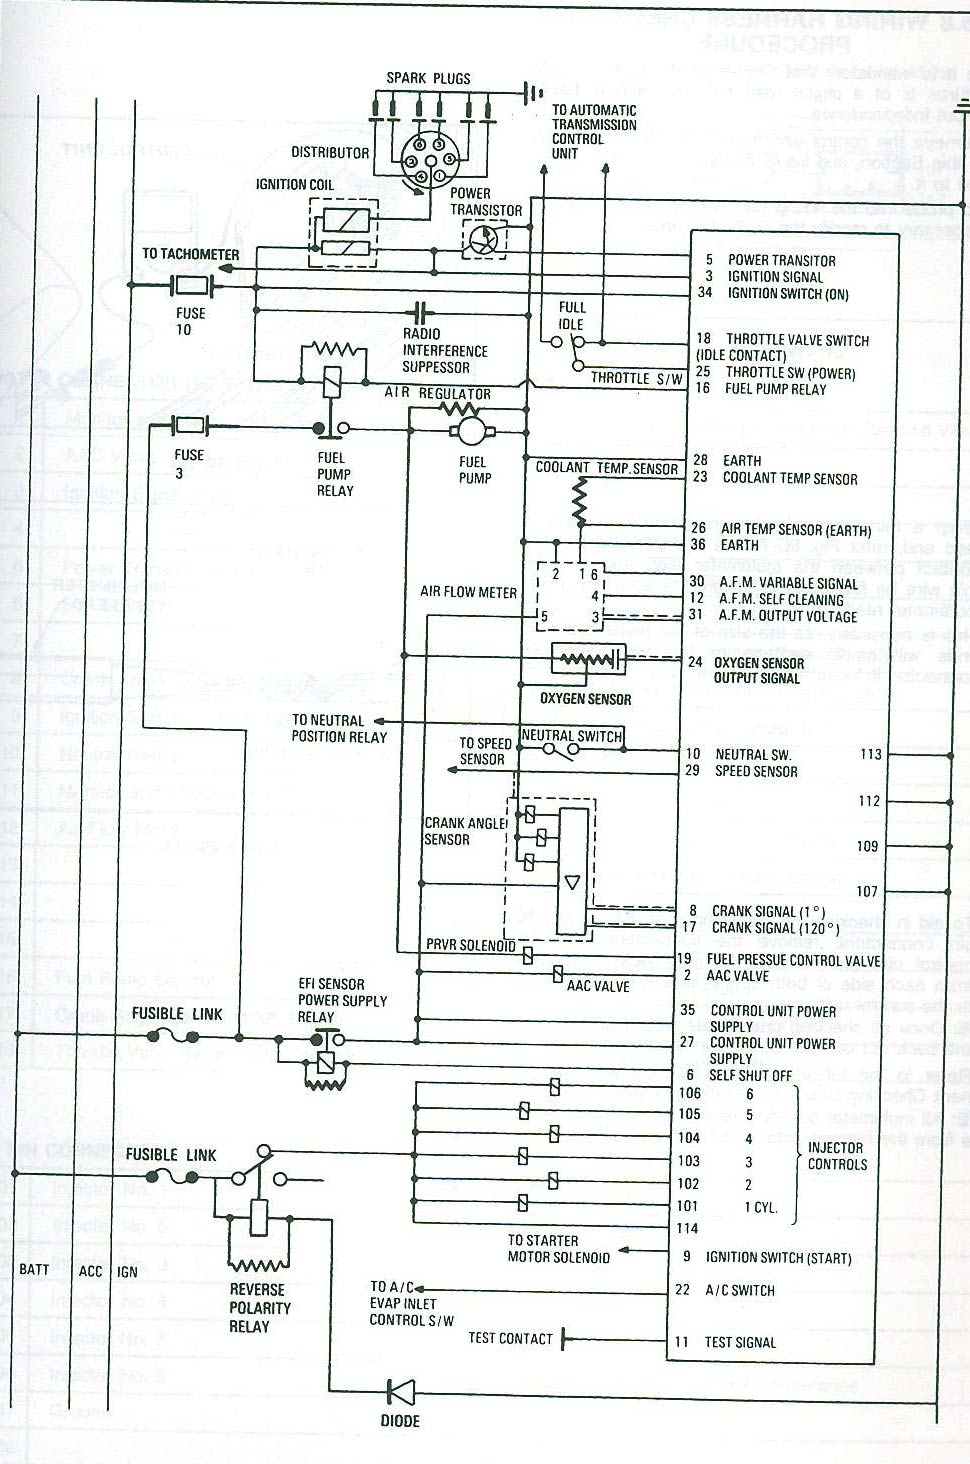 rb30et wiring patrol 4x4 nissan patrol forum rh patrol4x4 com 3-Way Switch Wiring Diagram HVAC Wiring Diagrams